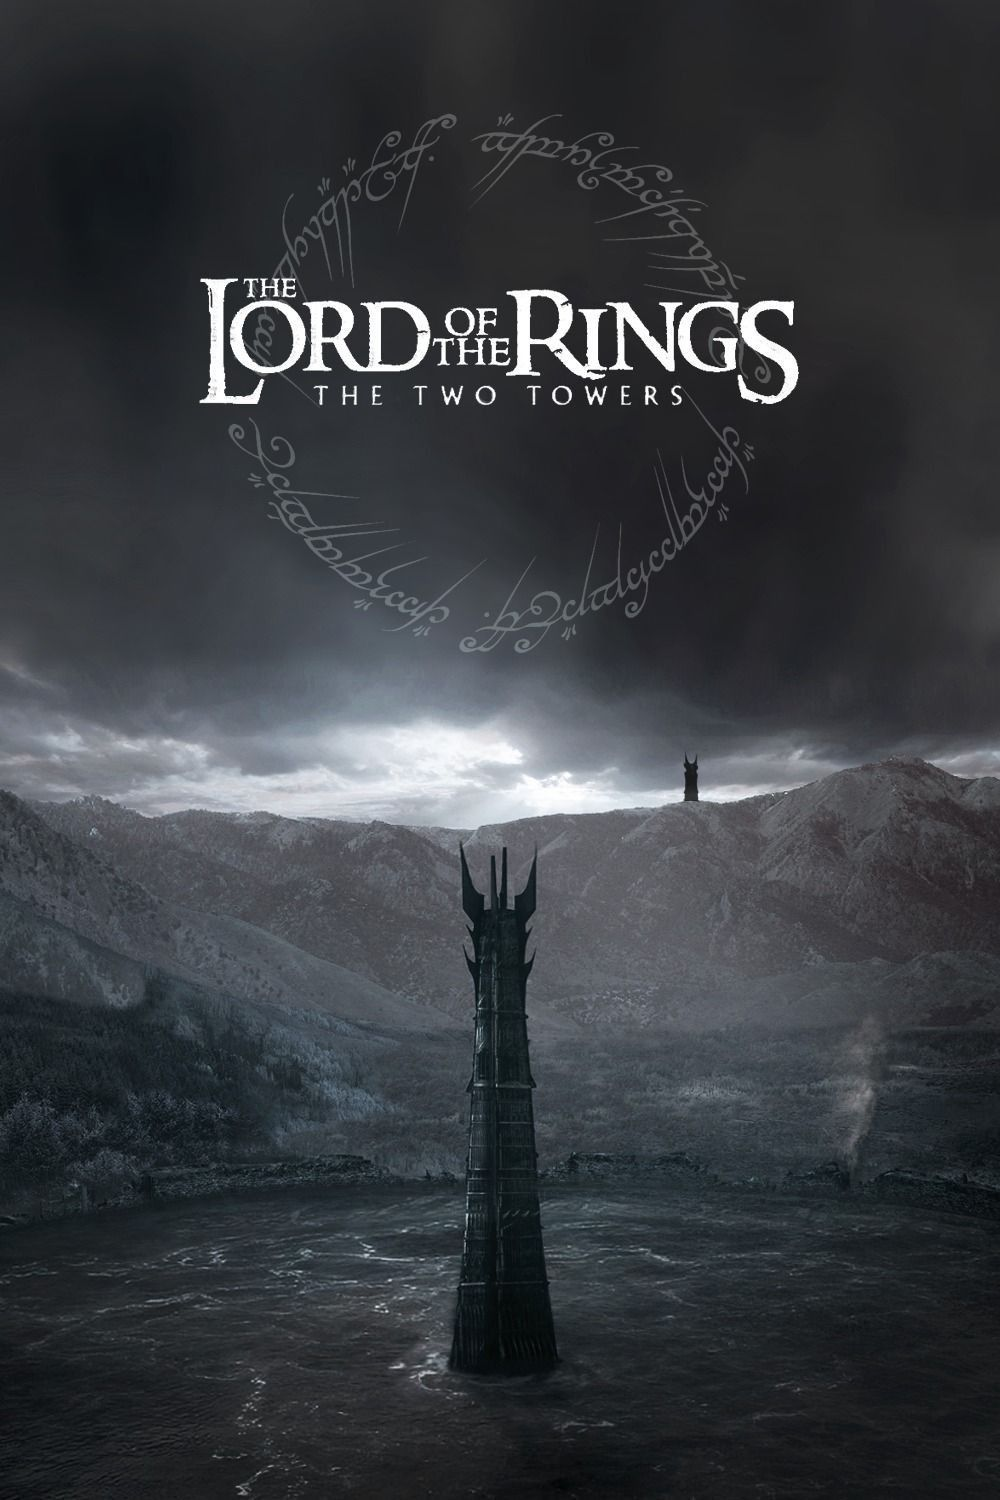 2the Lord Of The Rings The Two Towers 2002 In 2020 The Two Towers Lord Lord Of The Rings